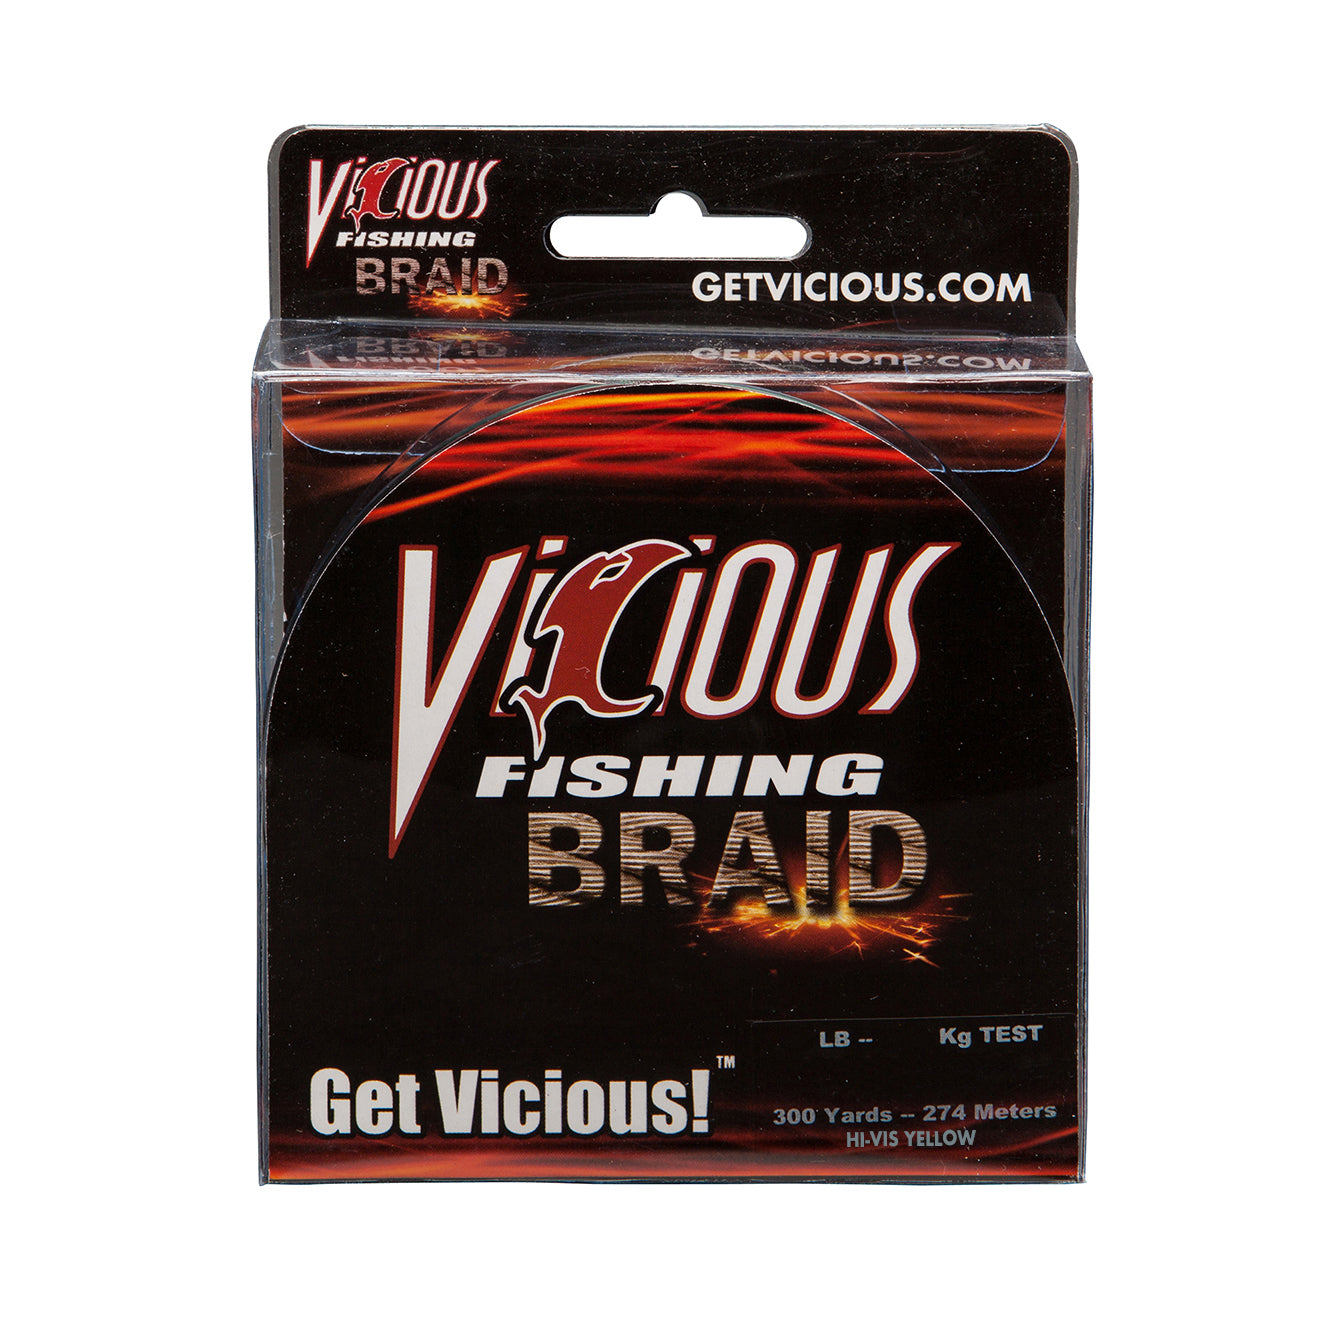 50lb Vicious Hi-Vis Yellow Braid - 300 Yards